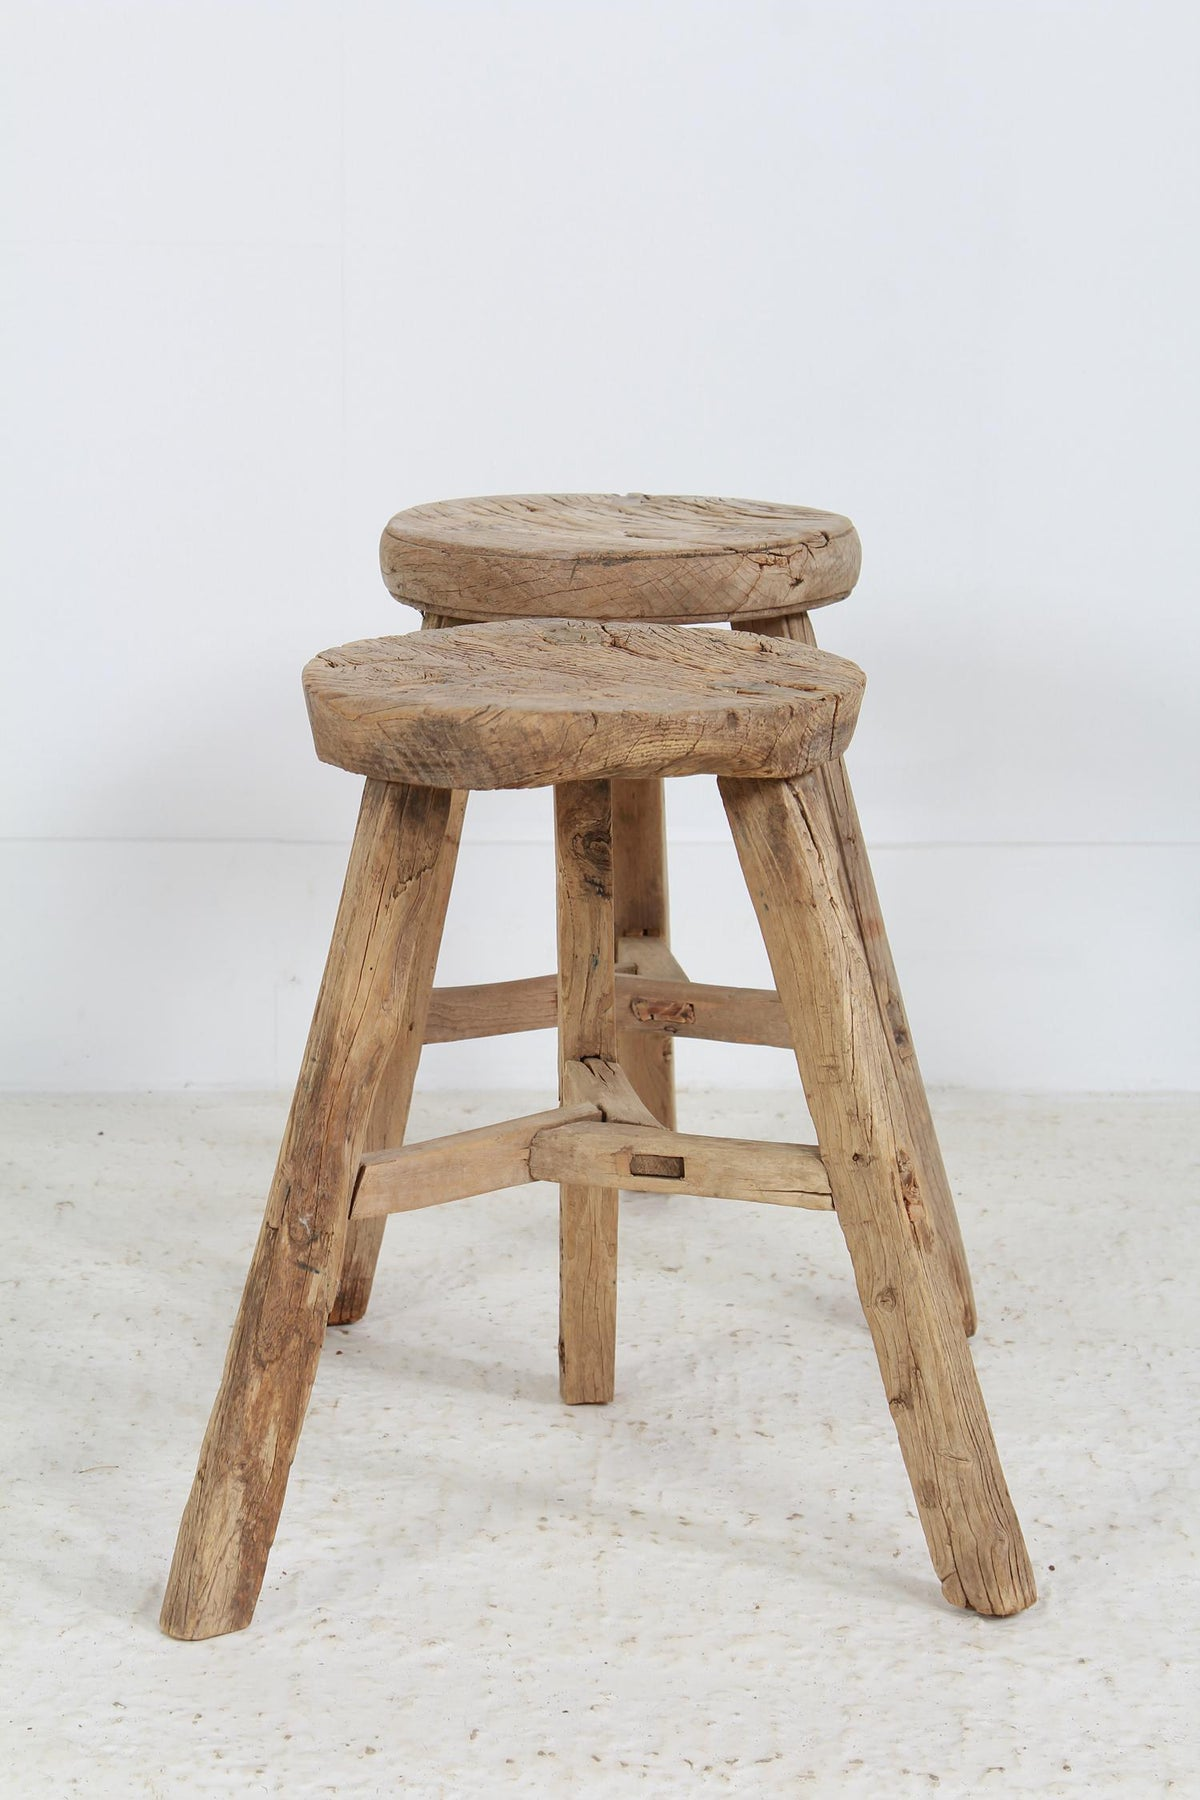 Rustic 19thC Century Three-Legged Pine Stools/Tables